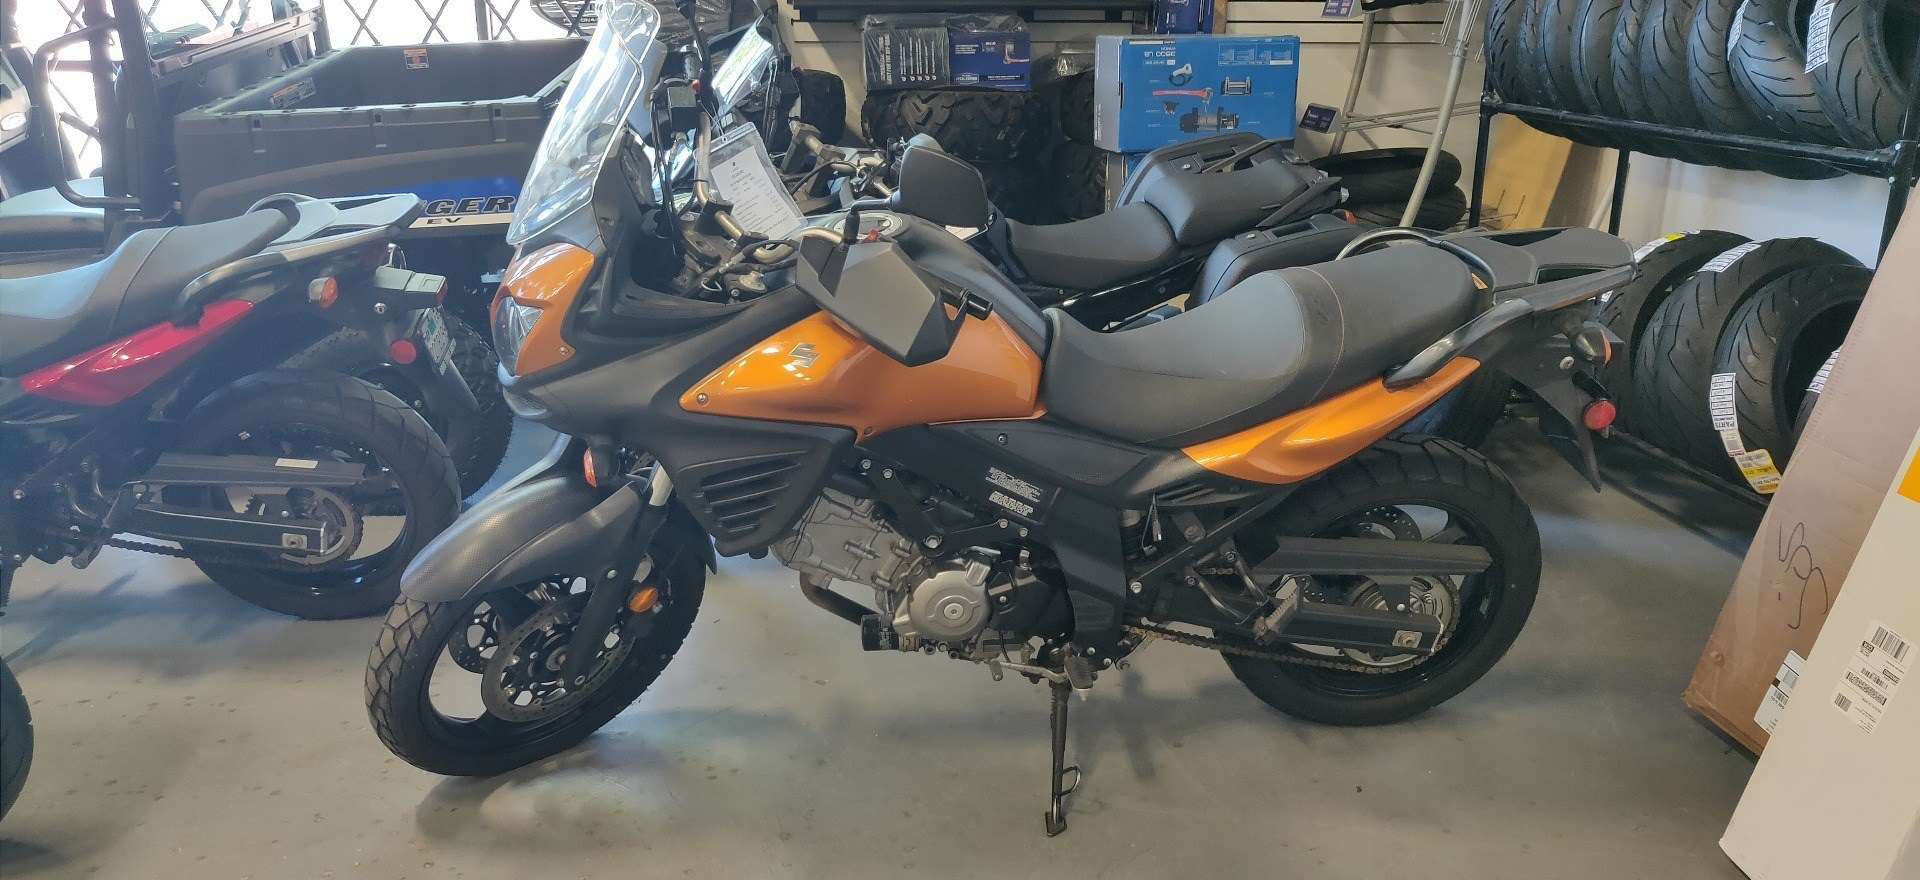 2012 Suzuki V-Strom 650 ABS in Vallejo, California - Photo 1